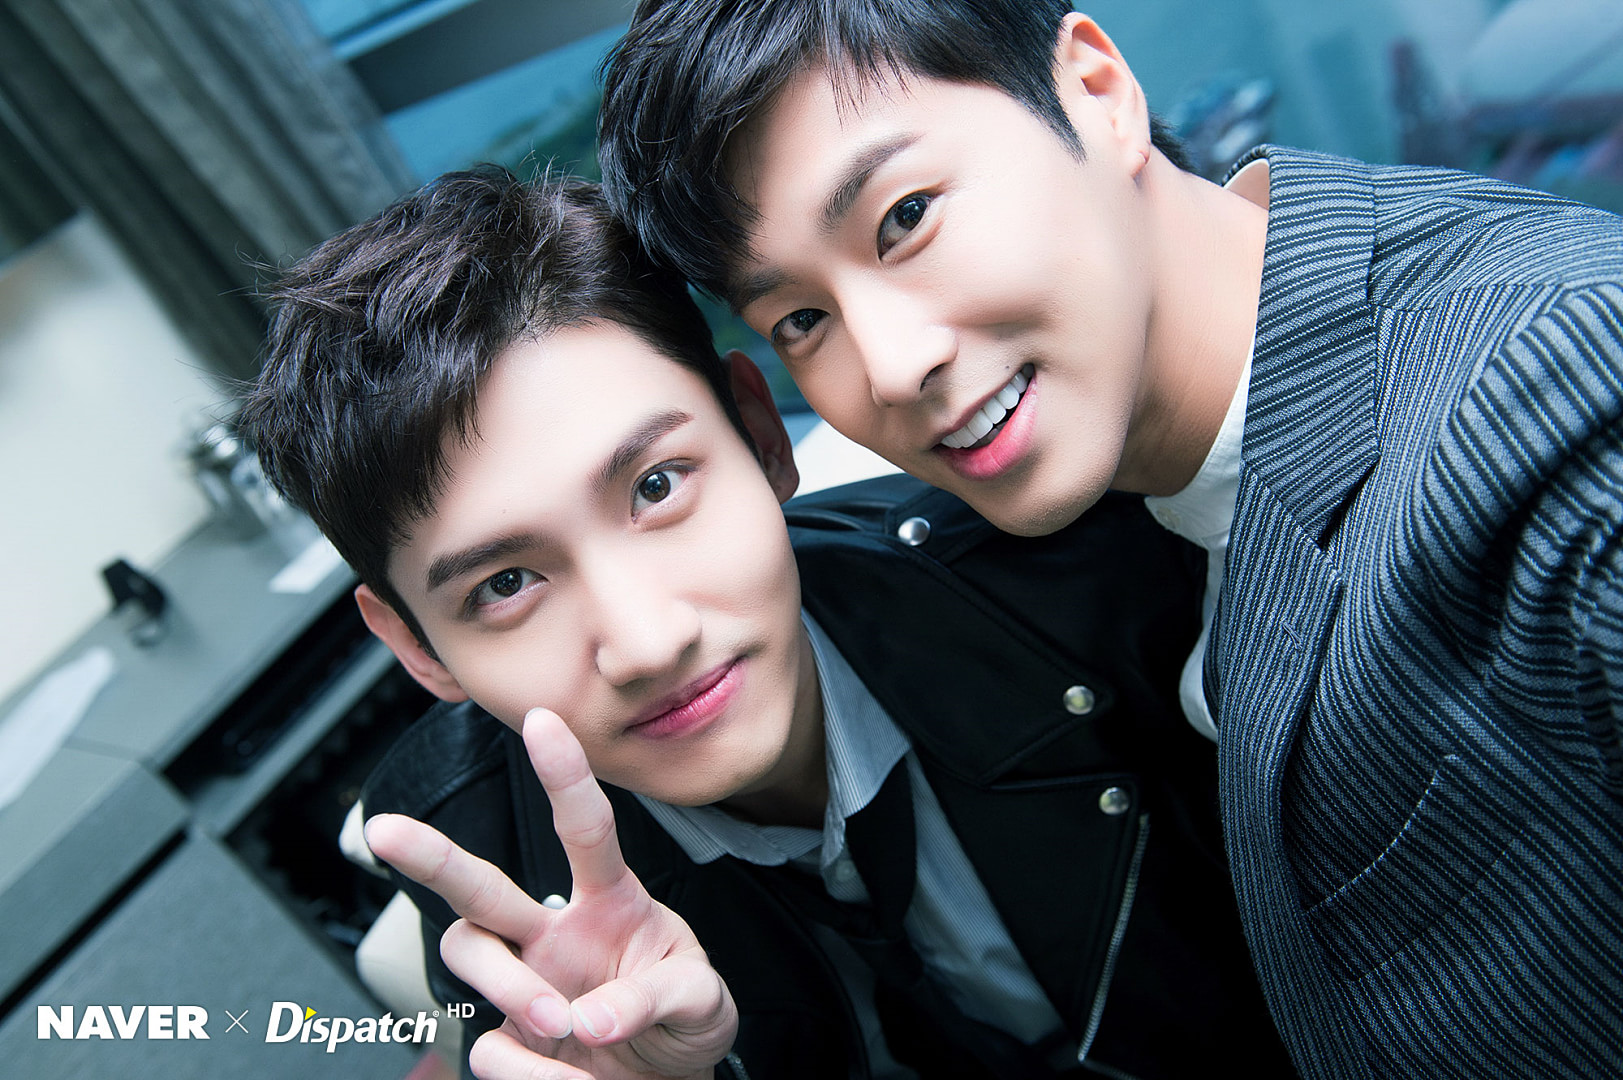 170825_tvxq_dispatch-naver_01.jpg